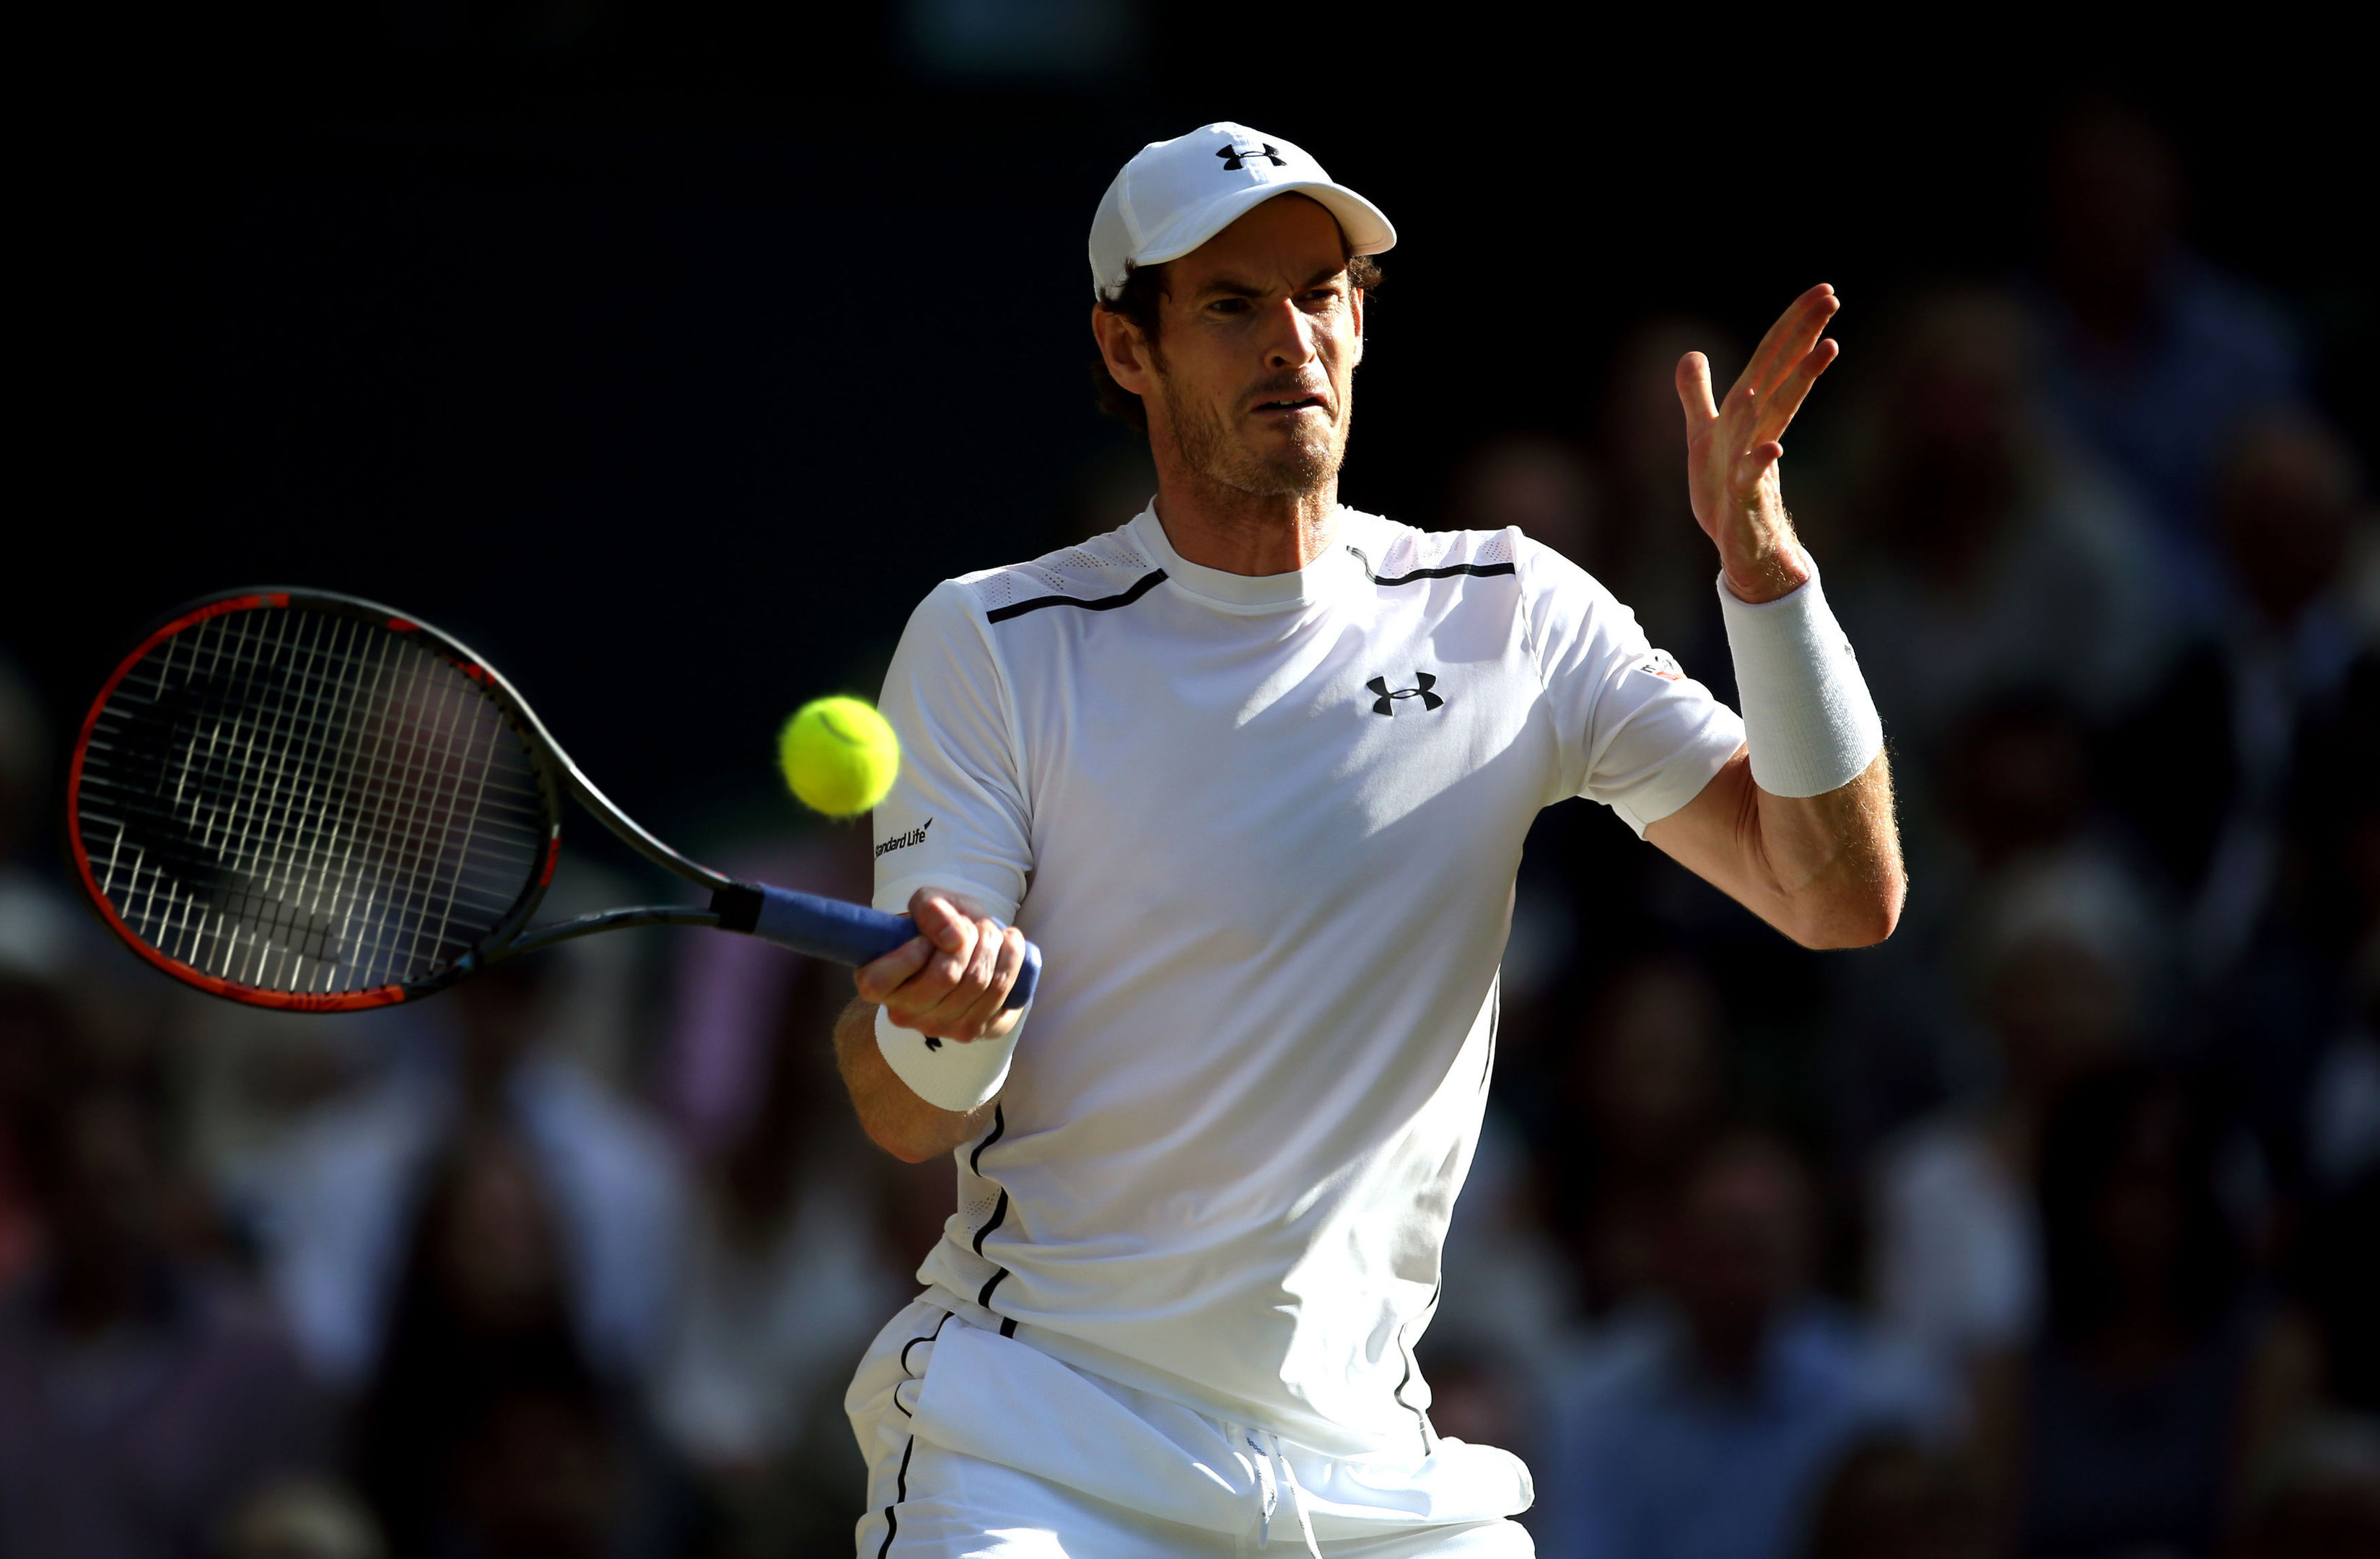 Andy Murray has been ruled out of Great Britain's Davis Cup quarter-final tie against France by an elbow injury. (Steve Paston/PA Wire)